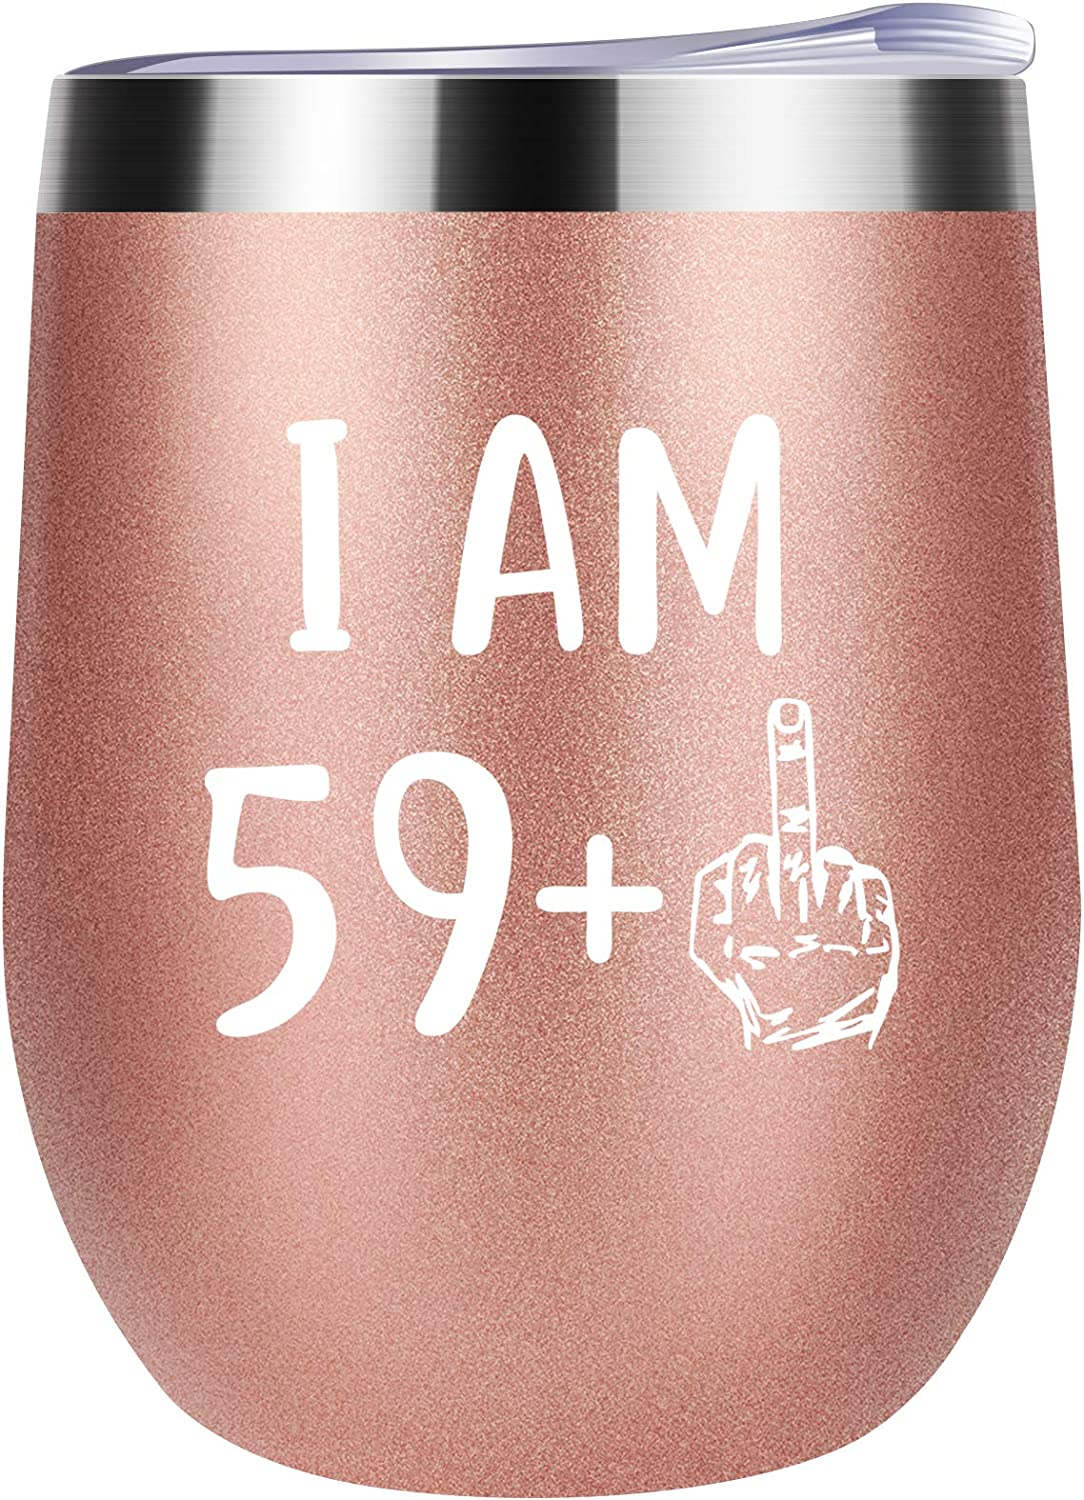 60th Birthday Gifts For Women Wine 59 Middle Finge Tumbler Nippon Max 64% OFF regular agency + One